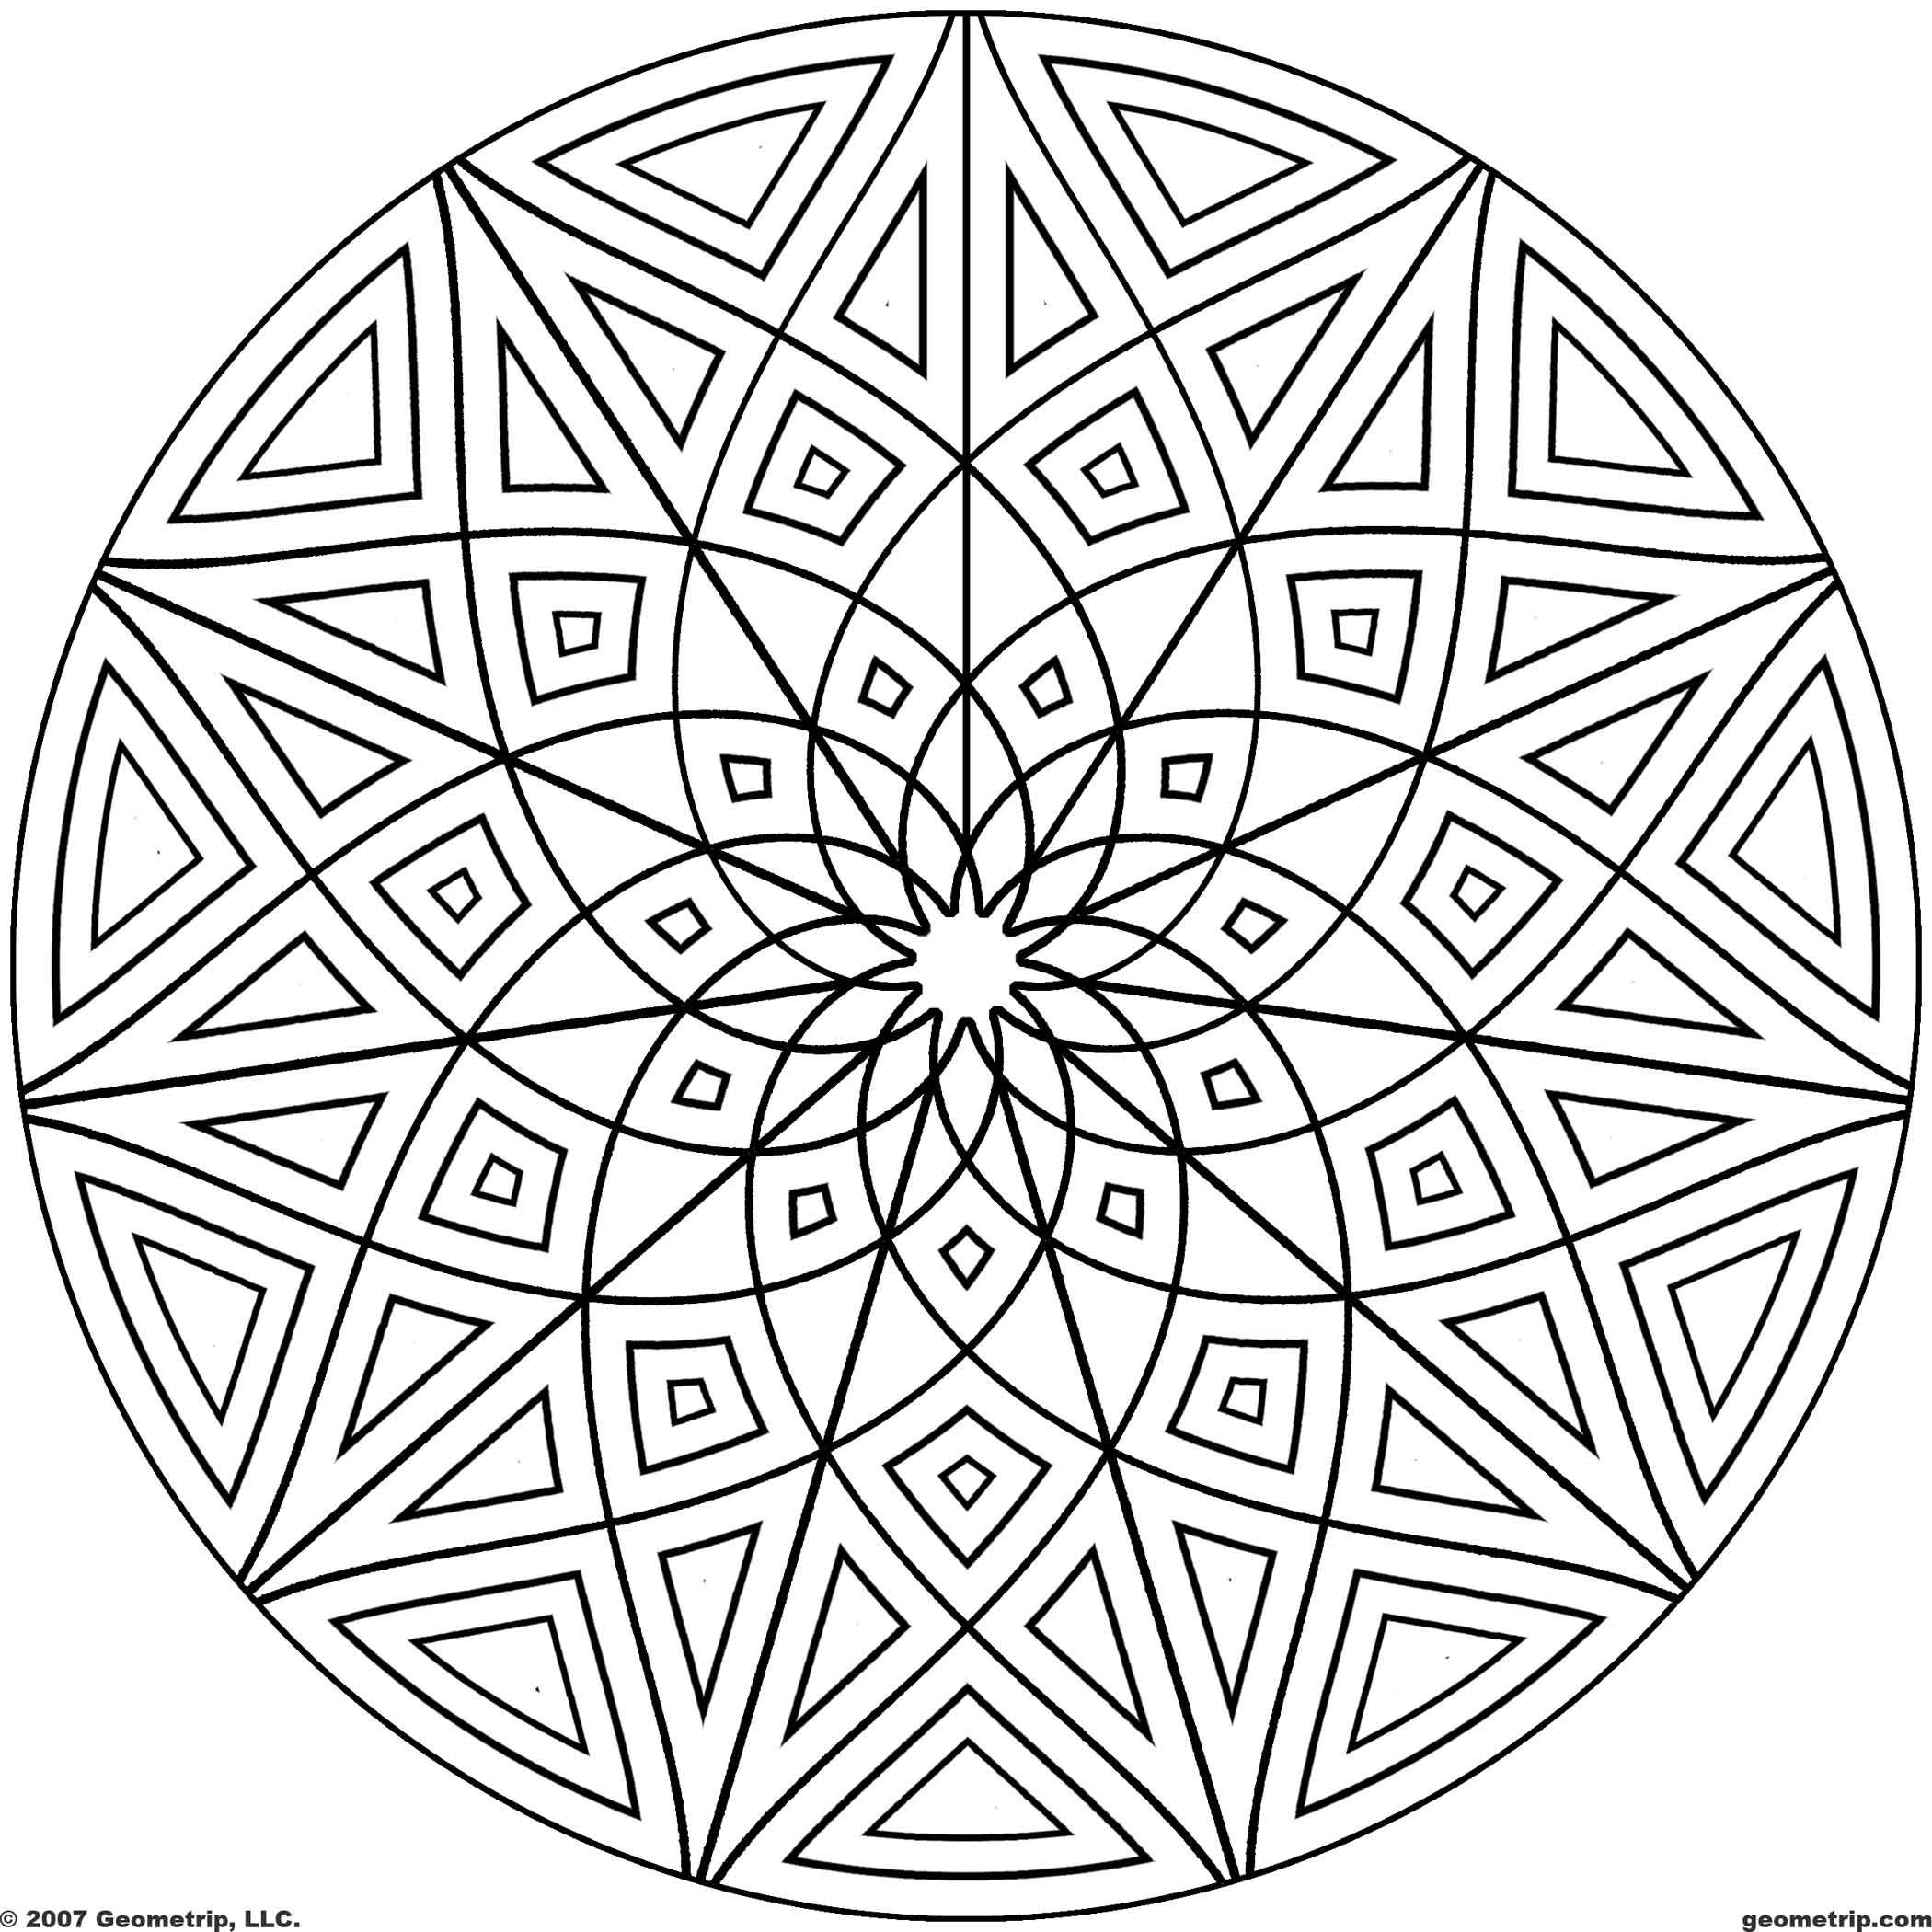 I Do Like To Color Geometric Coloring Pages Mandala Coloring Pages Geometric Patterns Coloring